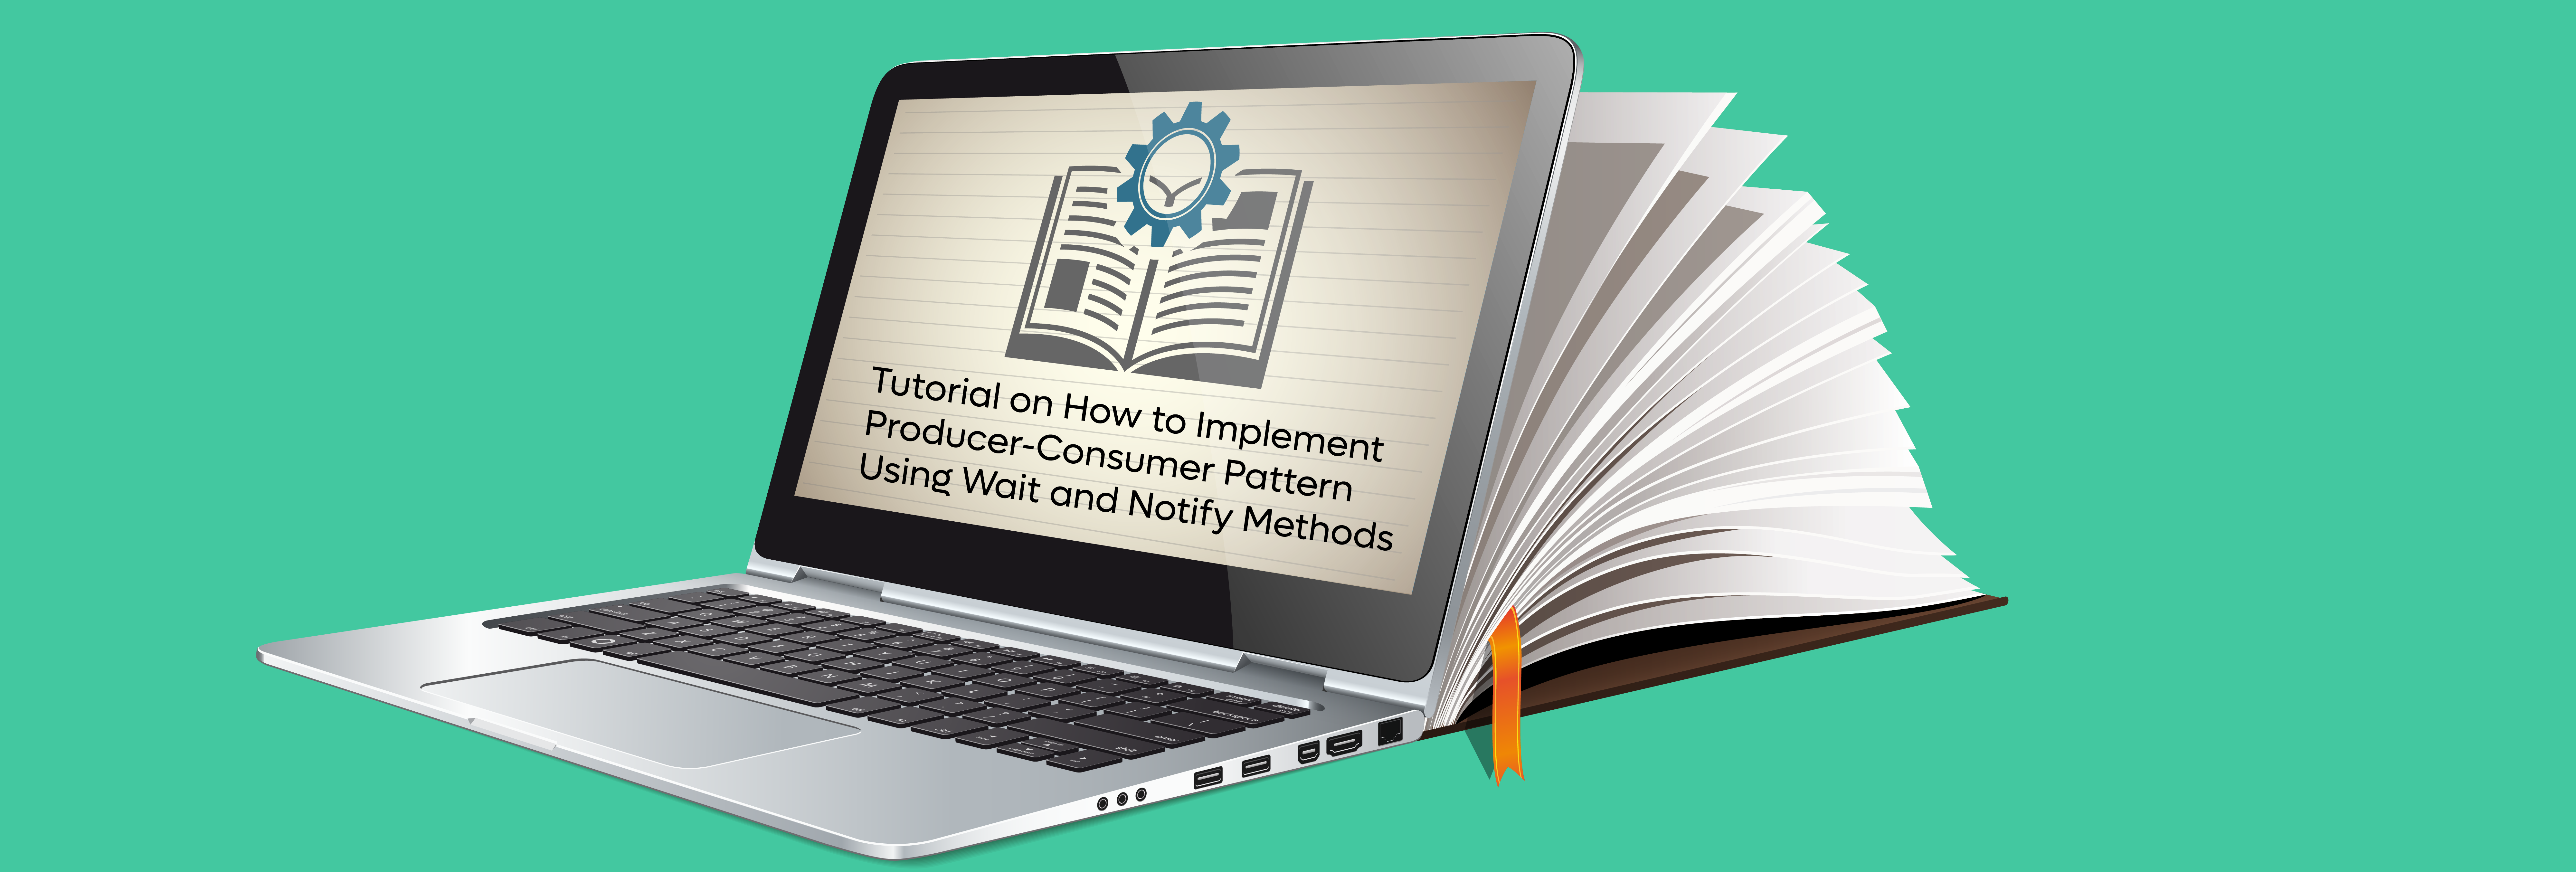 Tutorial on How to Implement Producer-Consumer Pattern Using Wait and Notify Methods